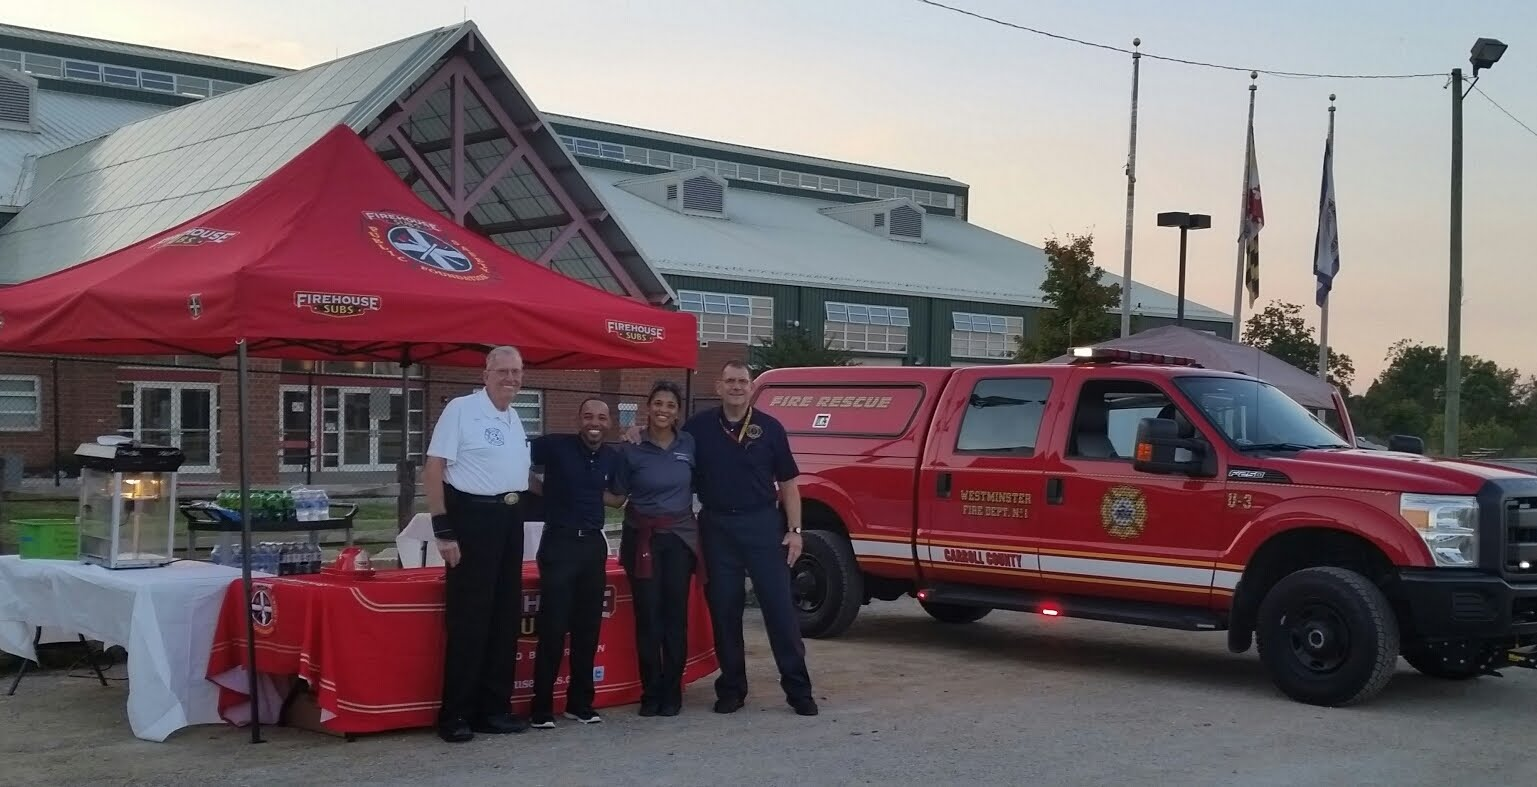 Dayhoff Soundtrack: The Westminster Vol  Fire Dept  visited with